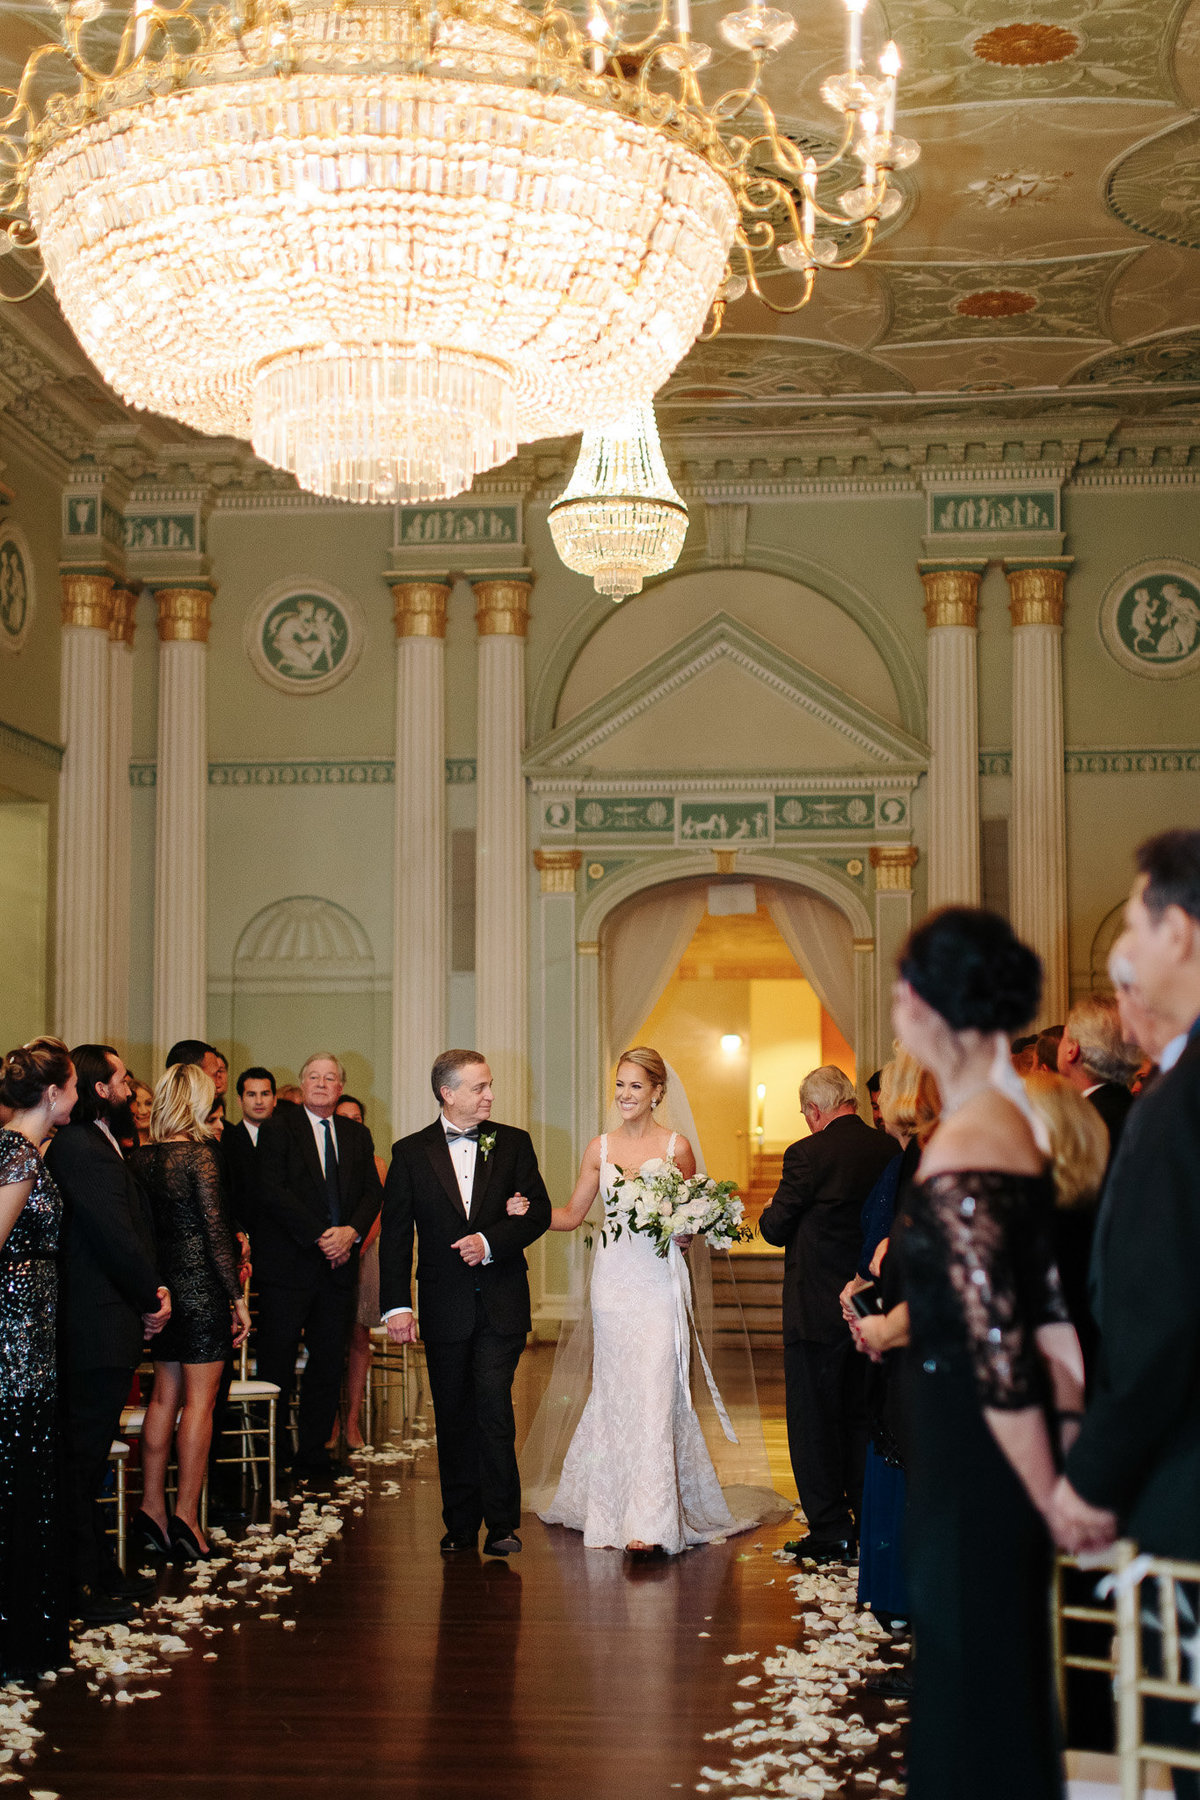 Rebecca Cerasani captures bride and father walking down the aisle in the Georgian Ballroom at the Biltmore Atlanta.